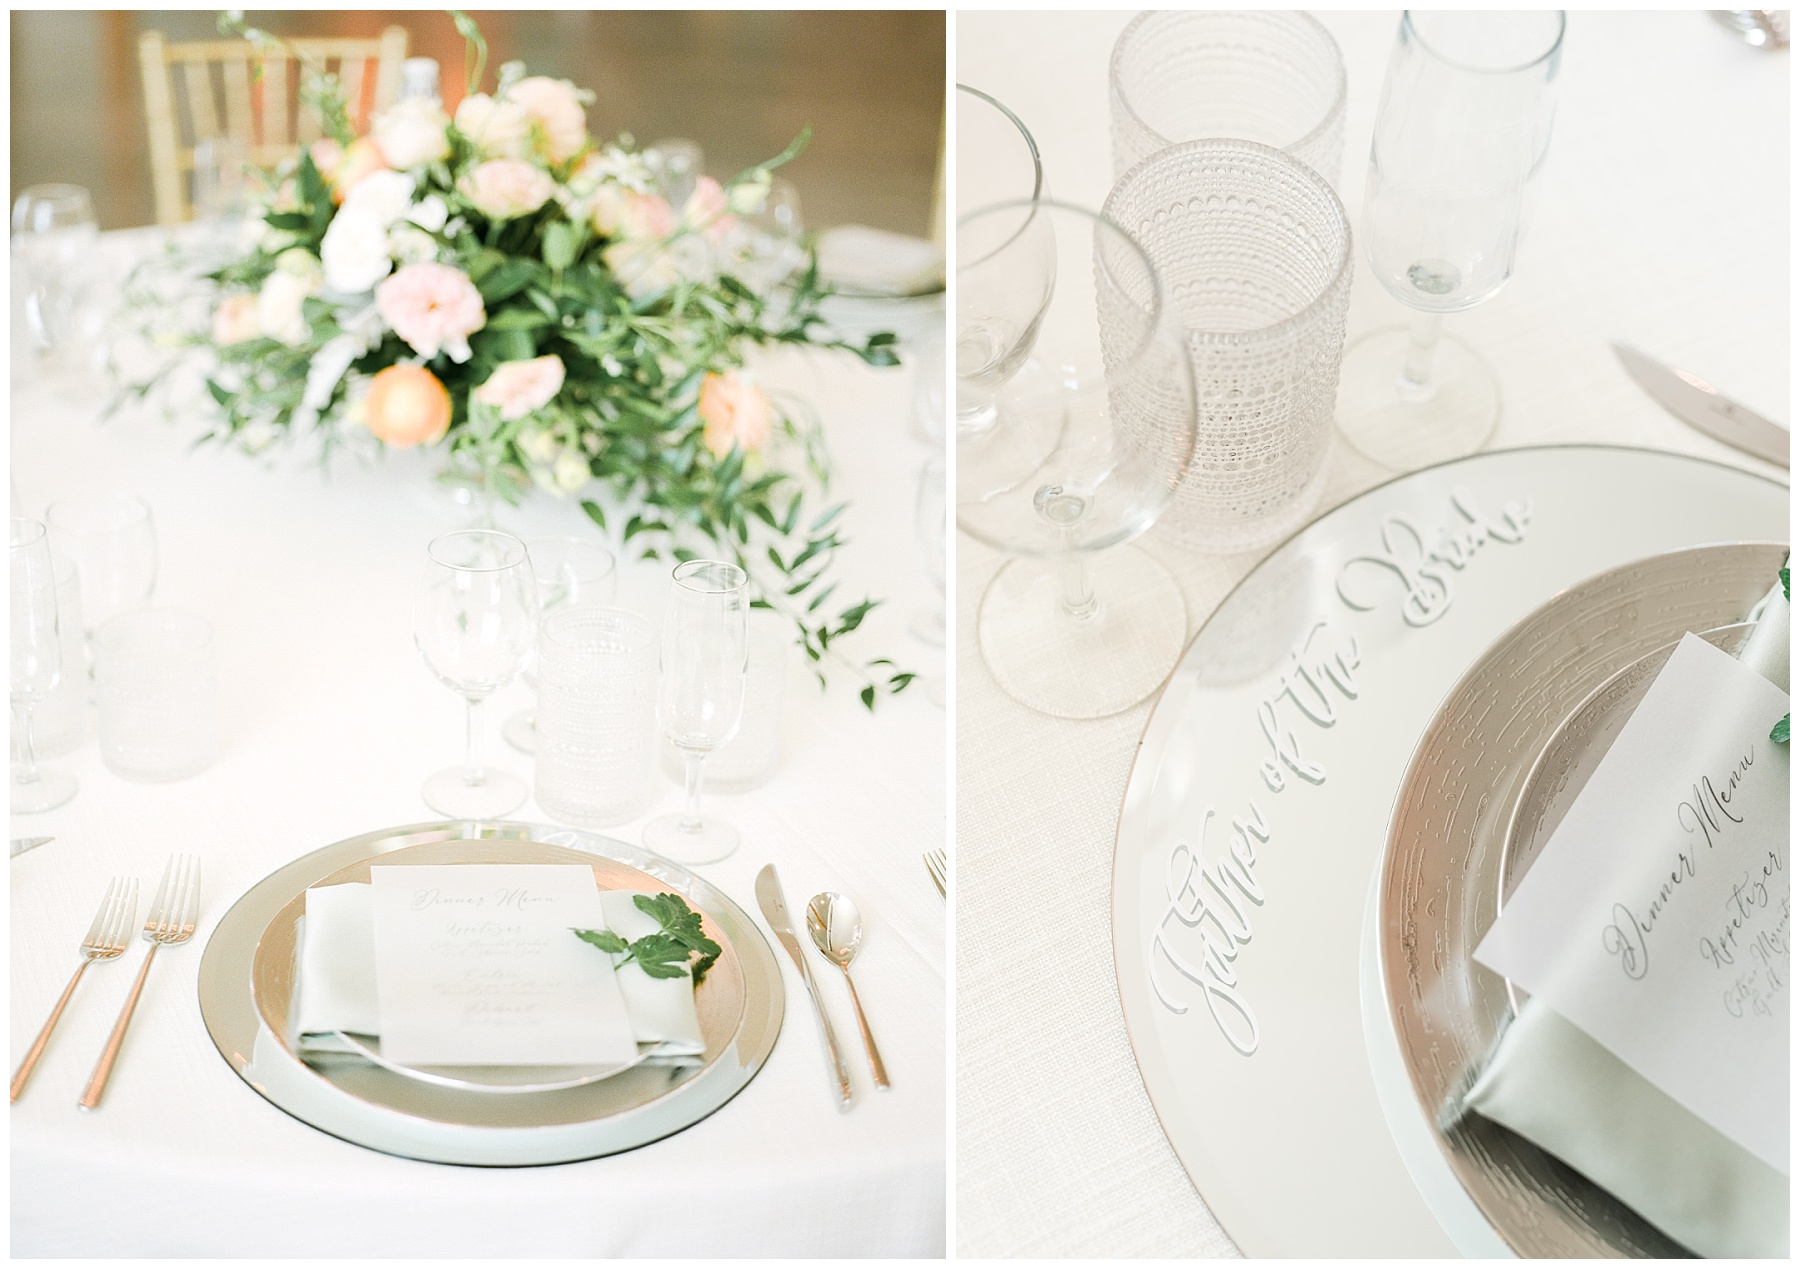 Textural Organic Wedding in All White Venue by Kelsi Kliethermes Wedding Photographer - Missouri, Midwest, and Destinations_0089.jpg